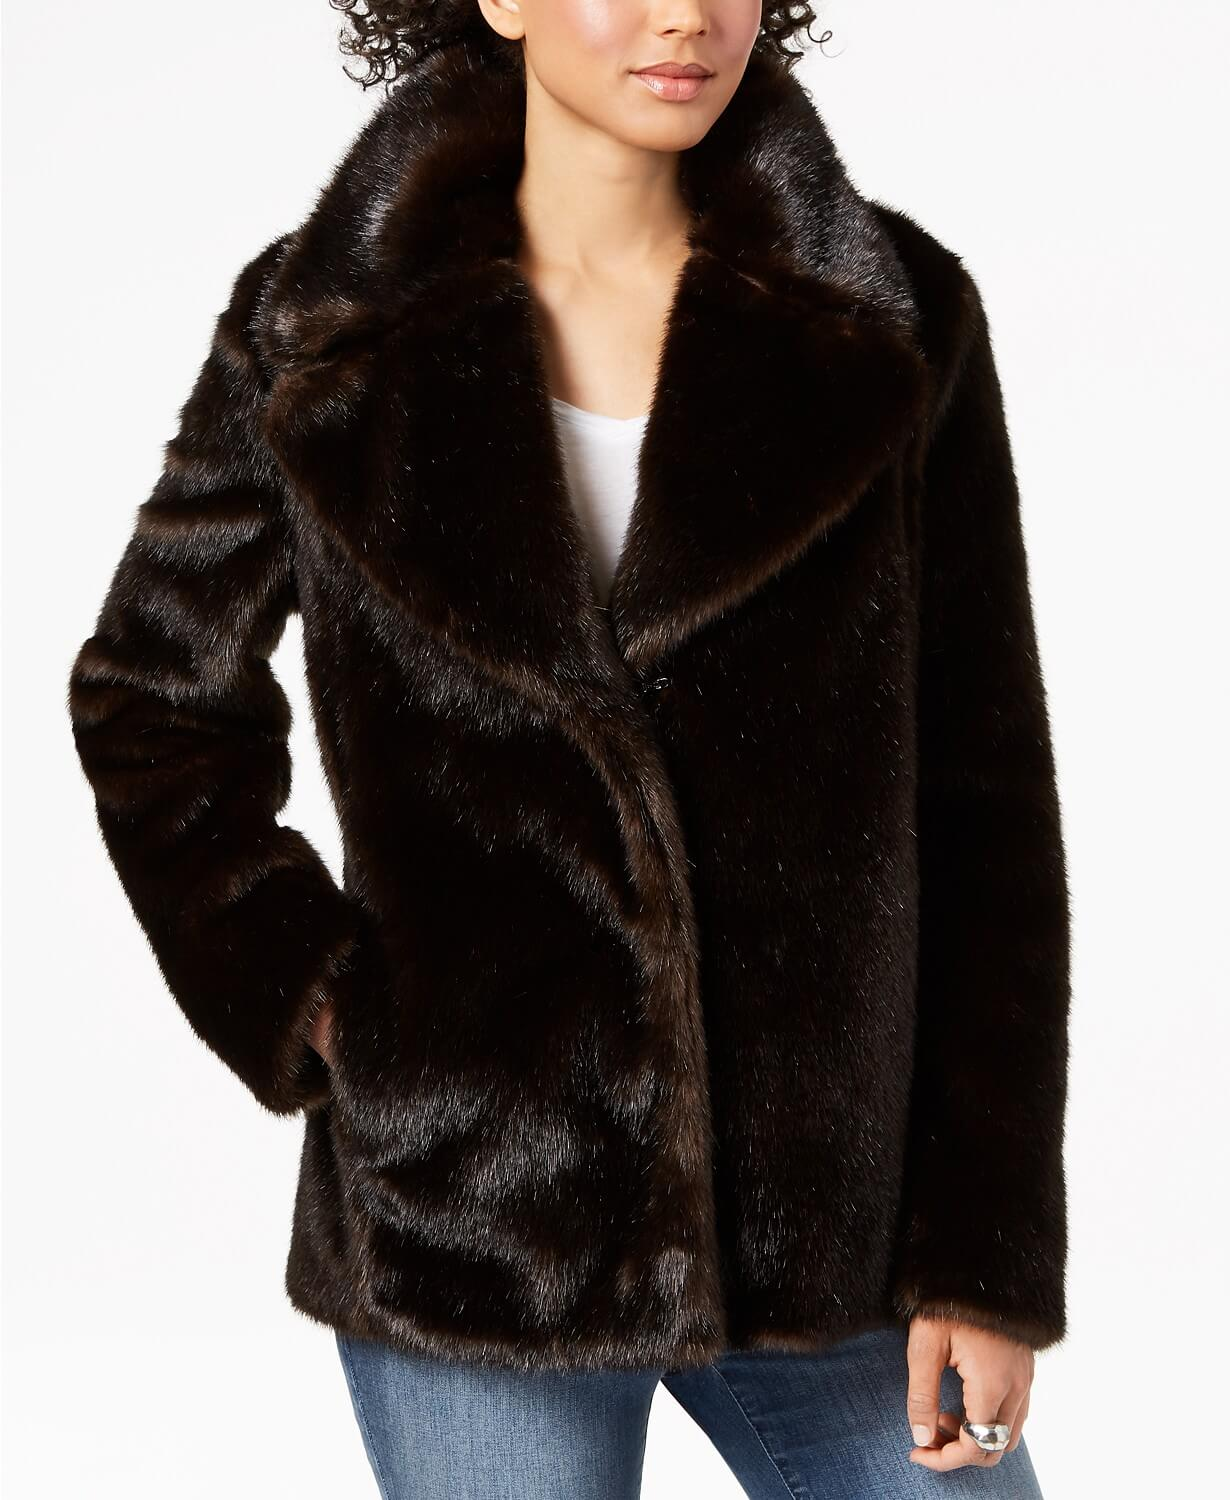 Kendall and Kylie Jenner Launch Vegan and Faux Fur Jacket Line at Macy's and Ardene